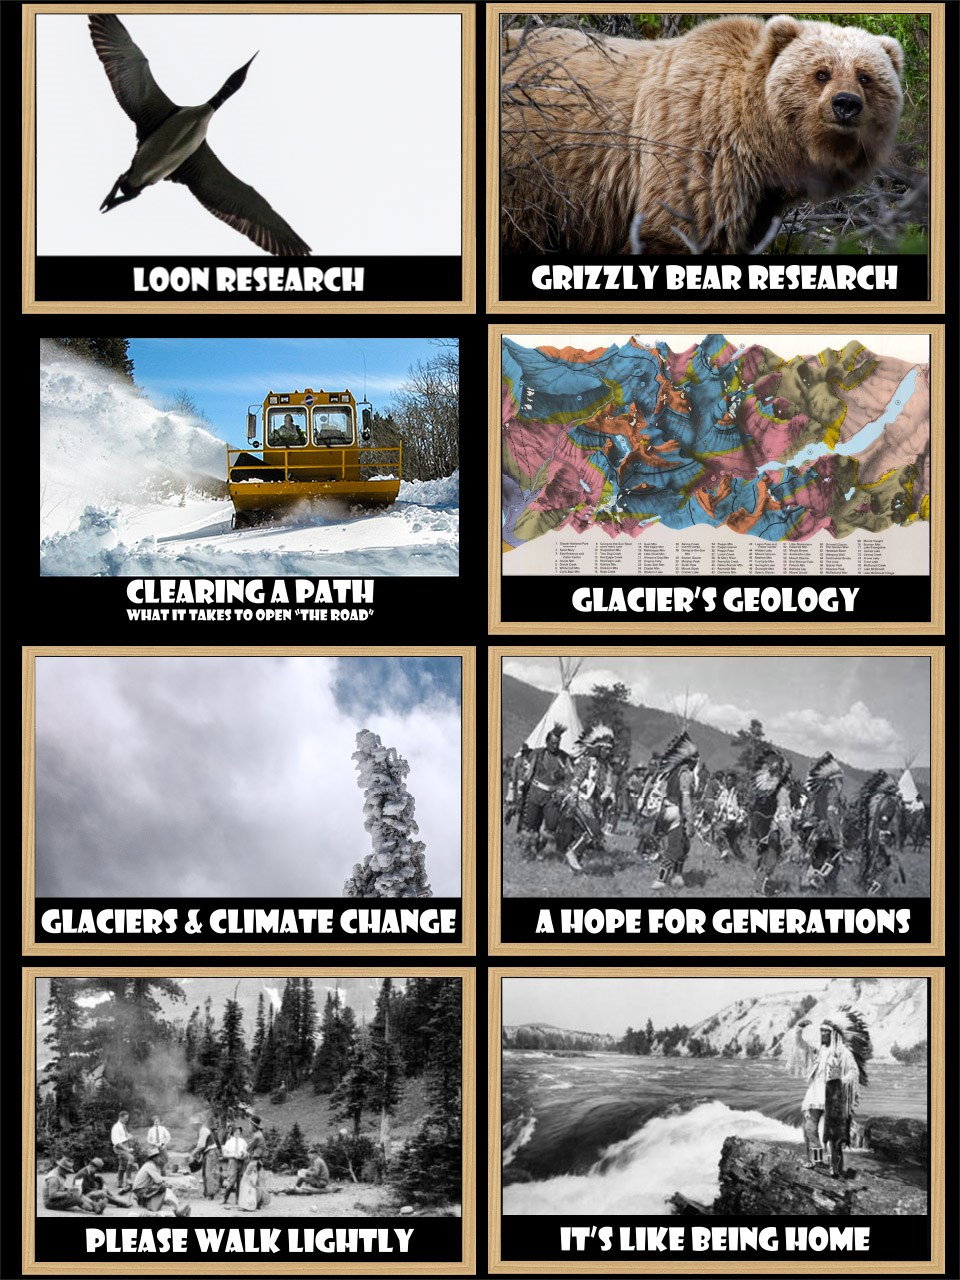 A grid of 8 photos which, when clicked, will take you to one of the eight videos which are: Loon Research, Grizzly Research, Clearing a Path (what it takes to clear the Going-to-the-Sun-Road, Glacier's Geology, Glaciers and Climate Change, and three Nati